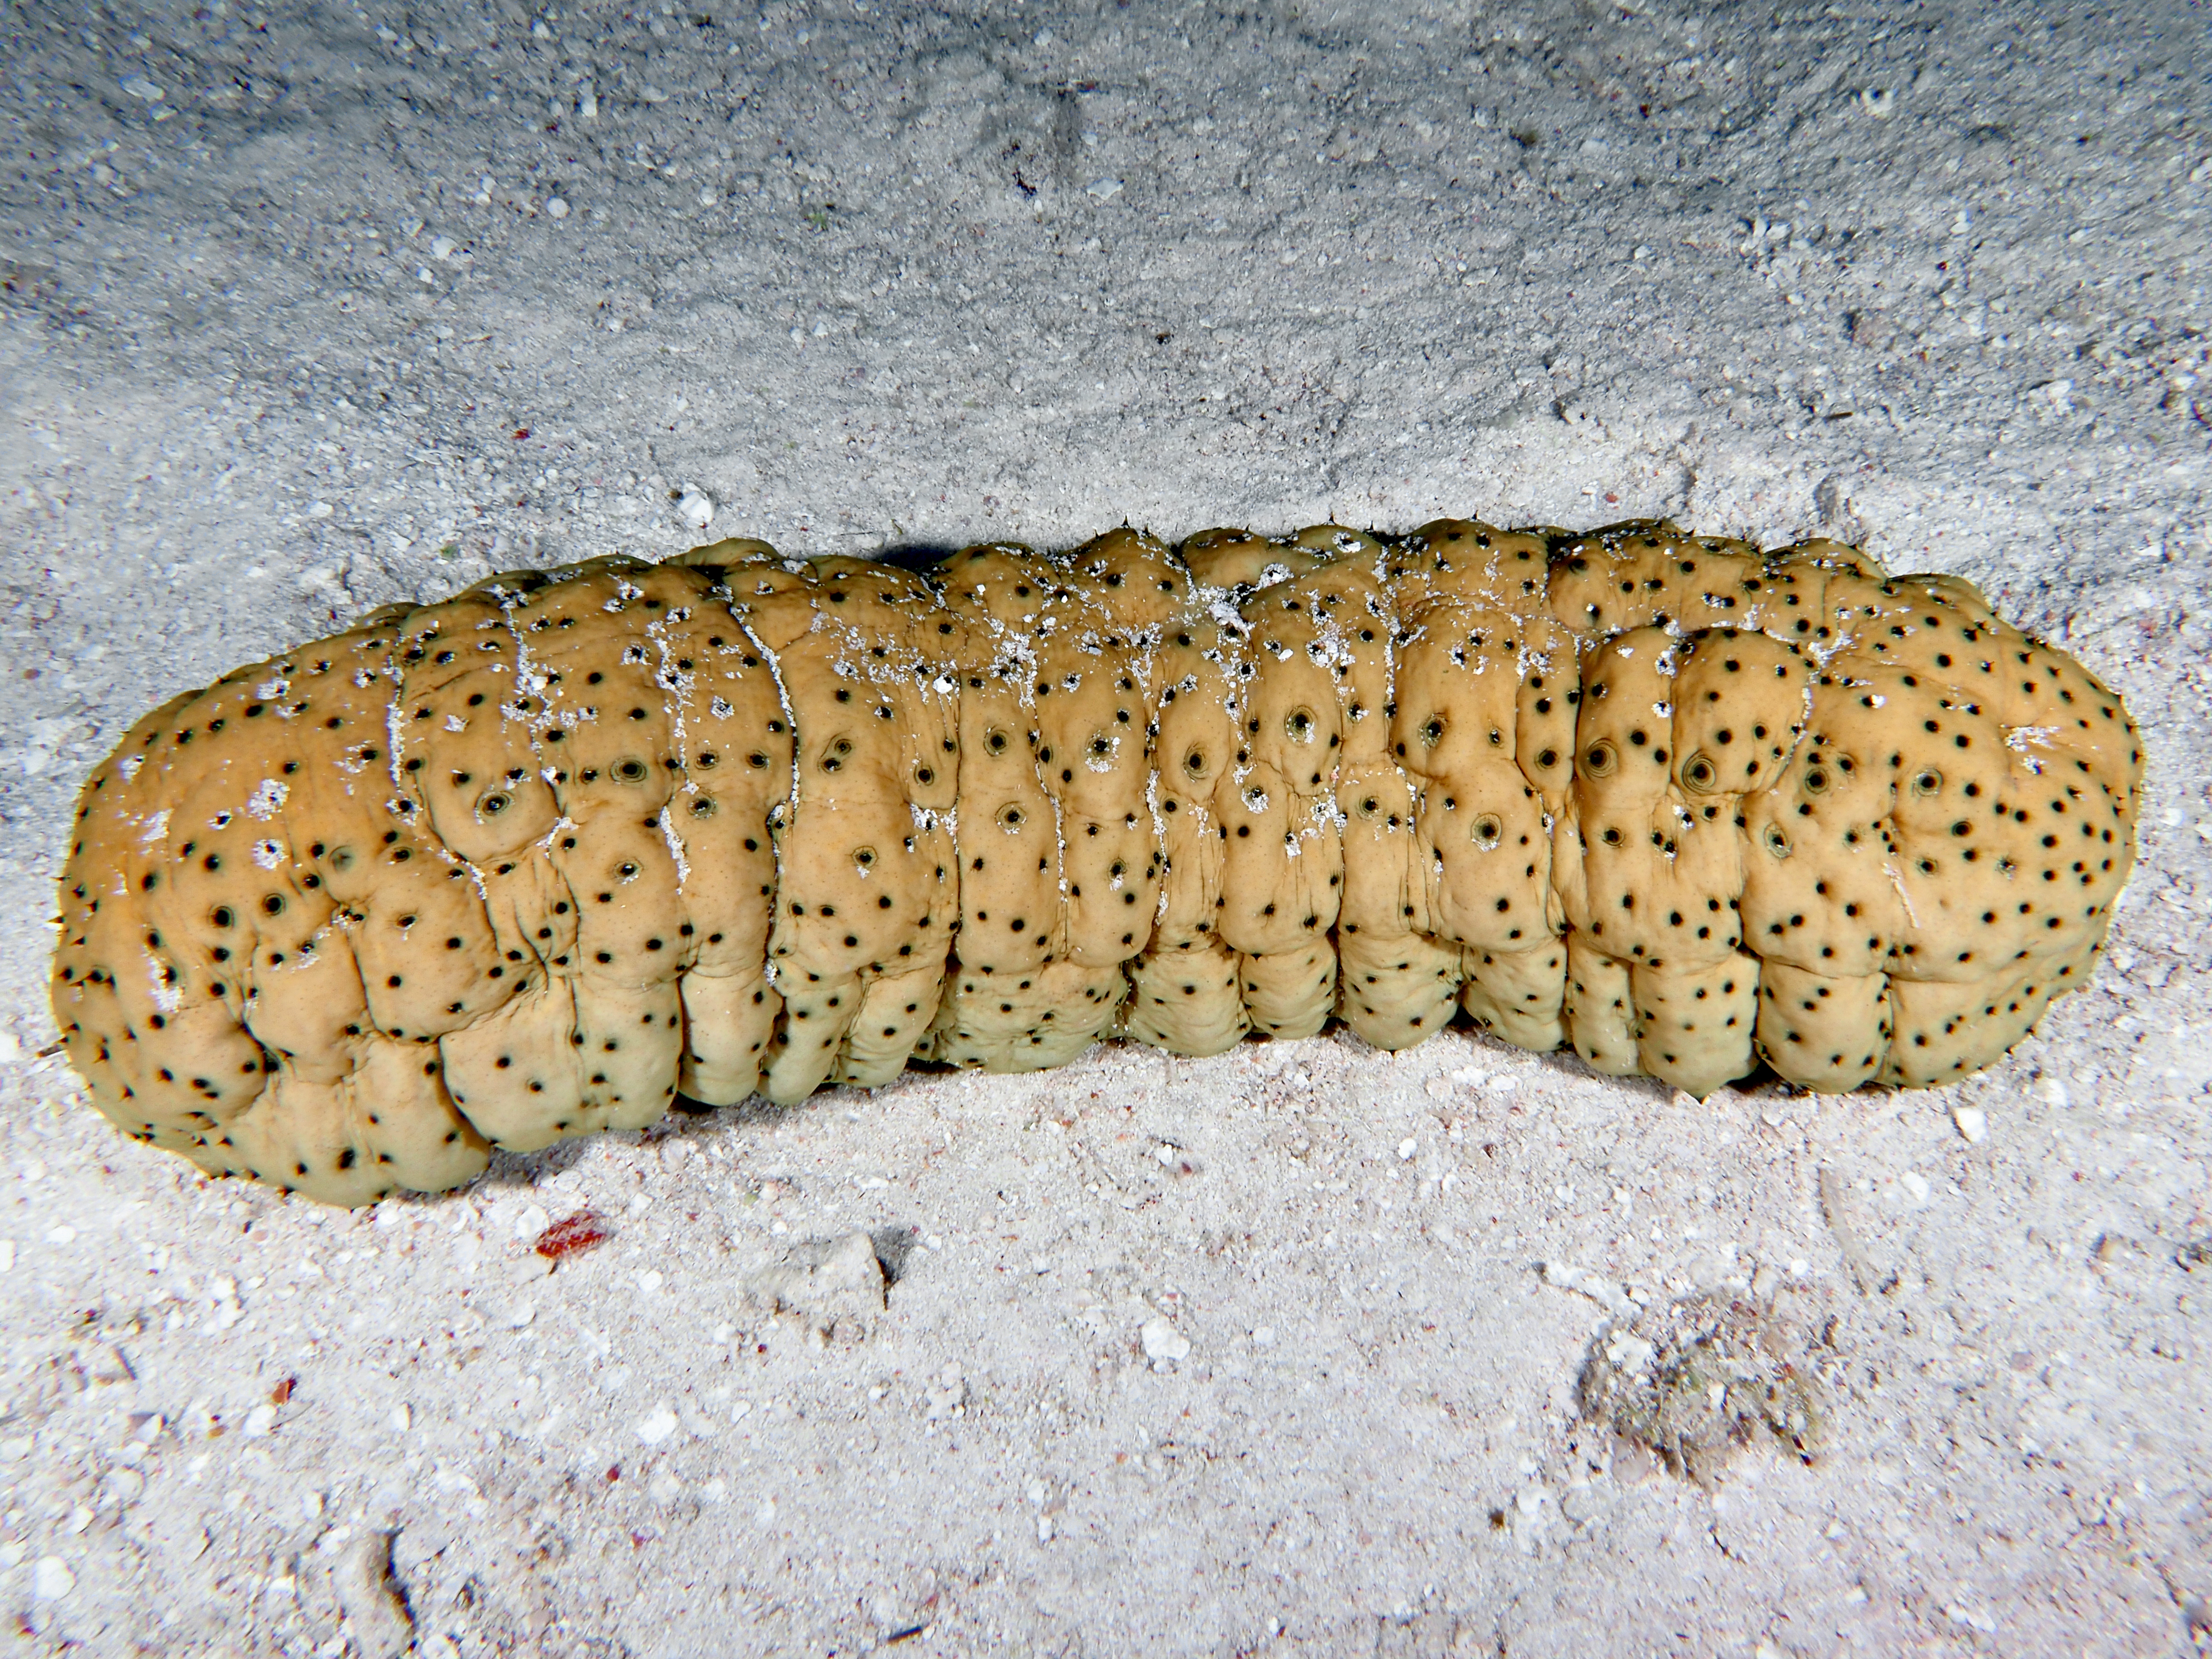 Curryfish Sea Cucumber - Stichopus herrmanni - Great Barrier Reef, Australia